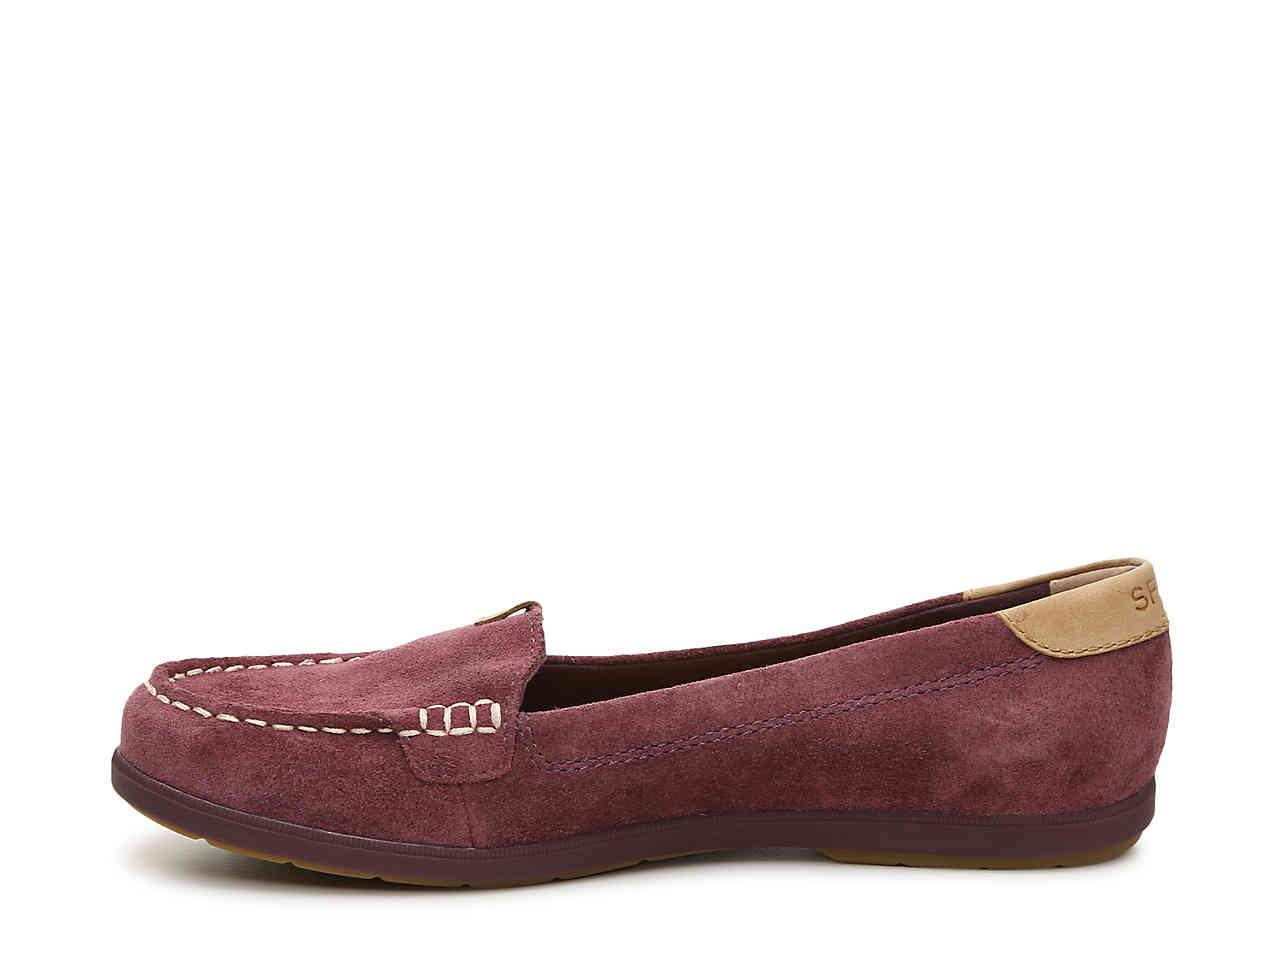 c61120e7b59 Lyst - Sperry Top-Sider Coil Mia Loafer